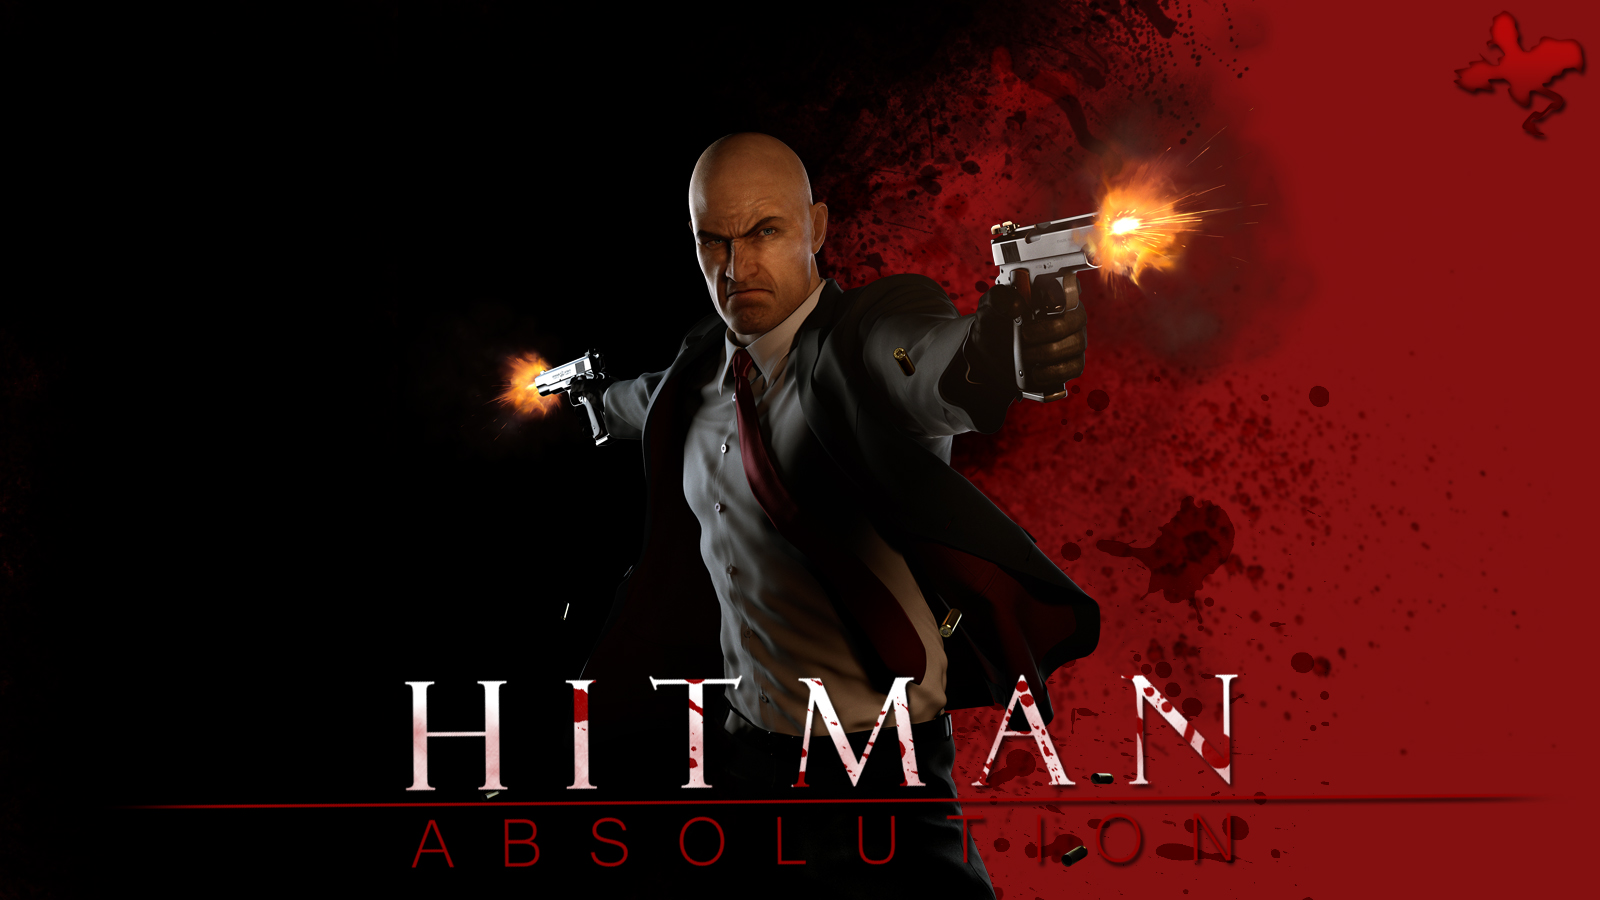 hitman absolution xbox one backwards compatibility release